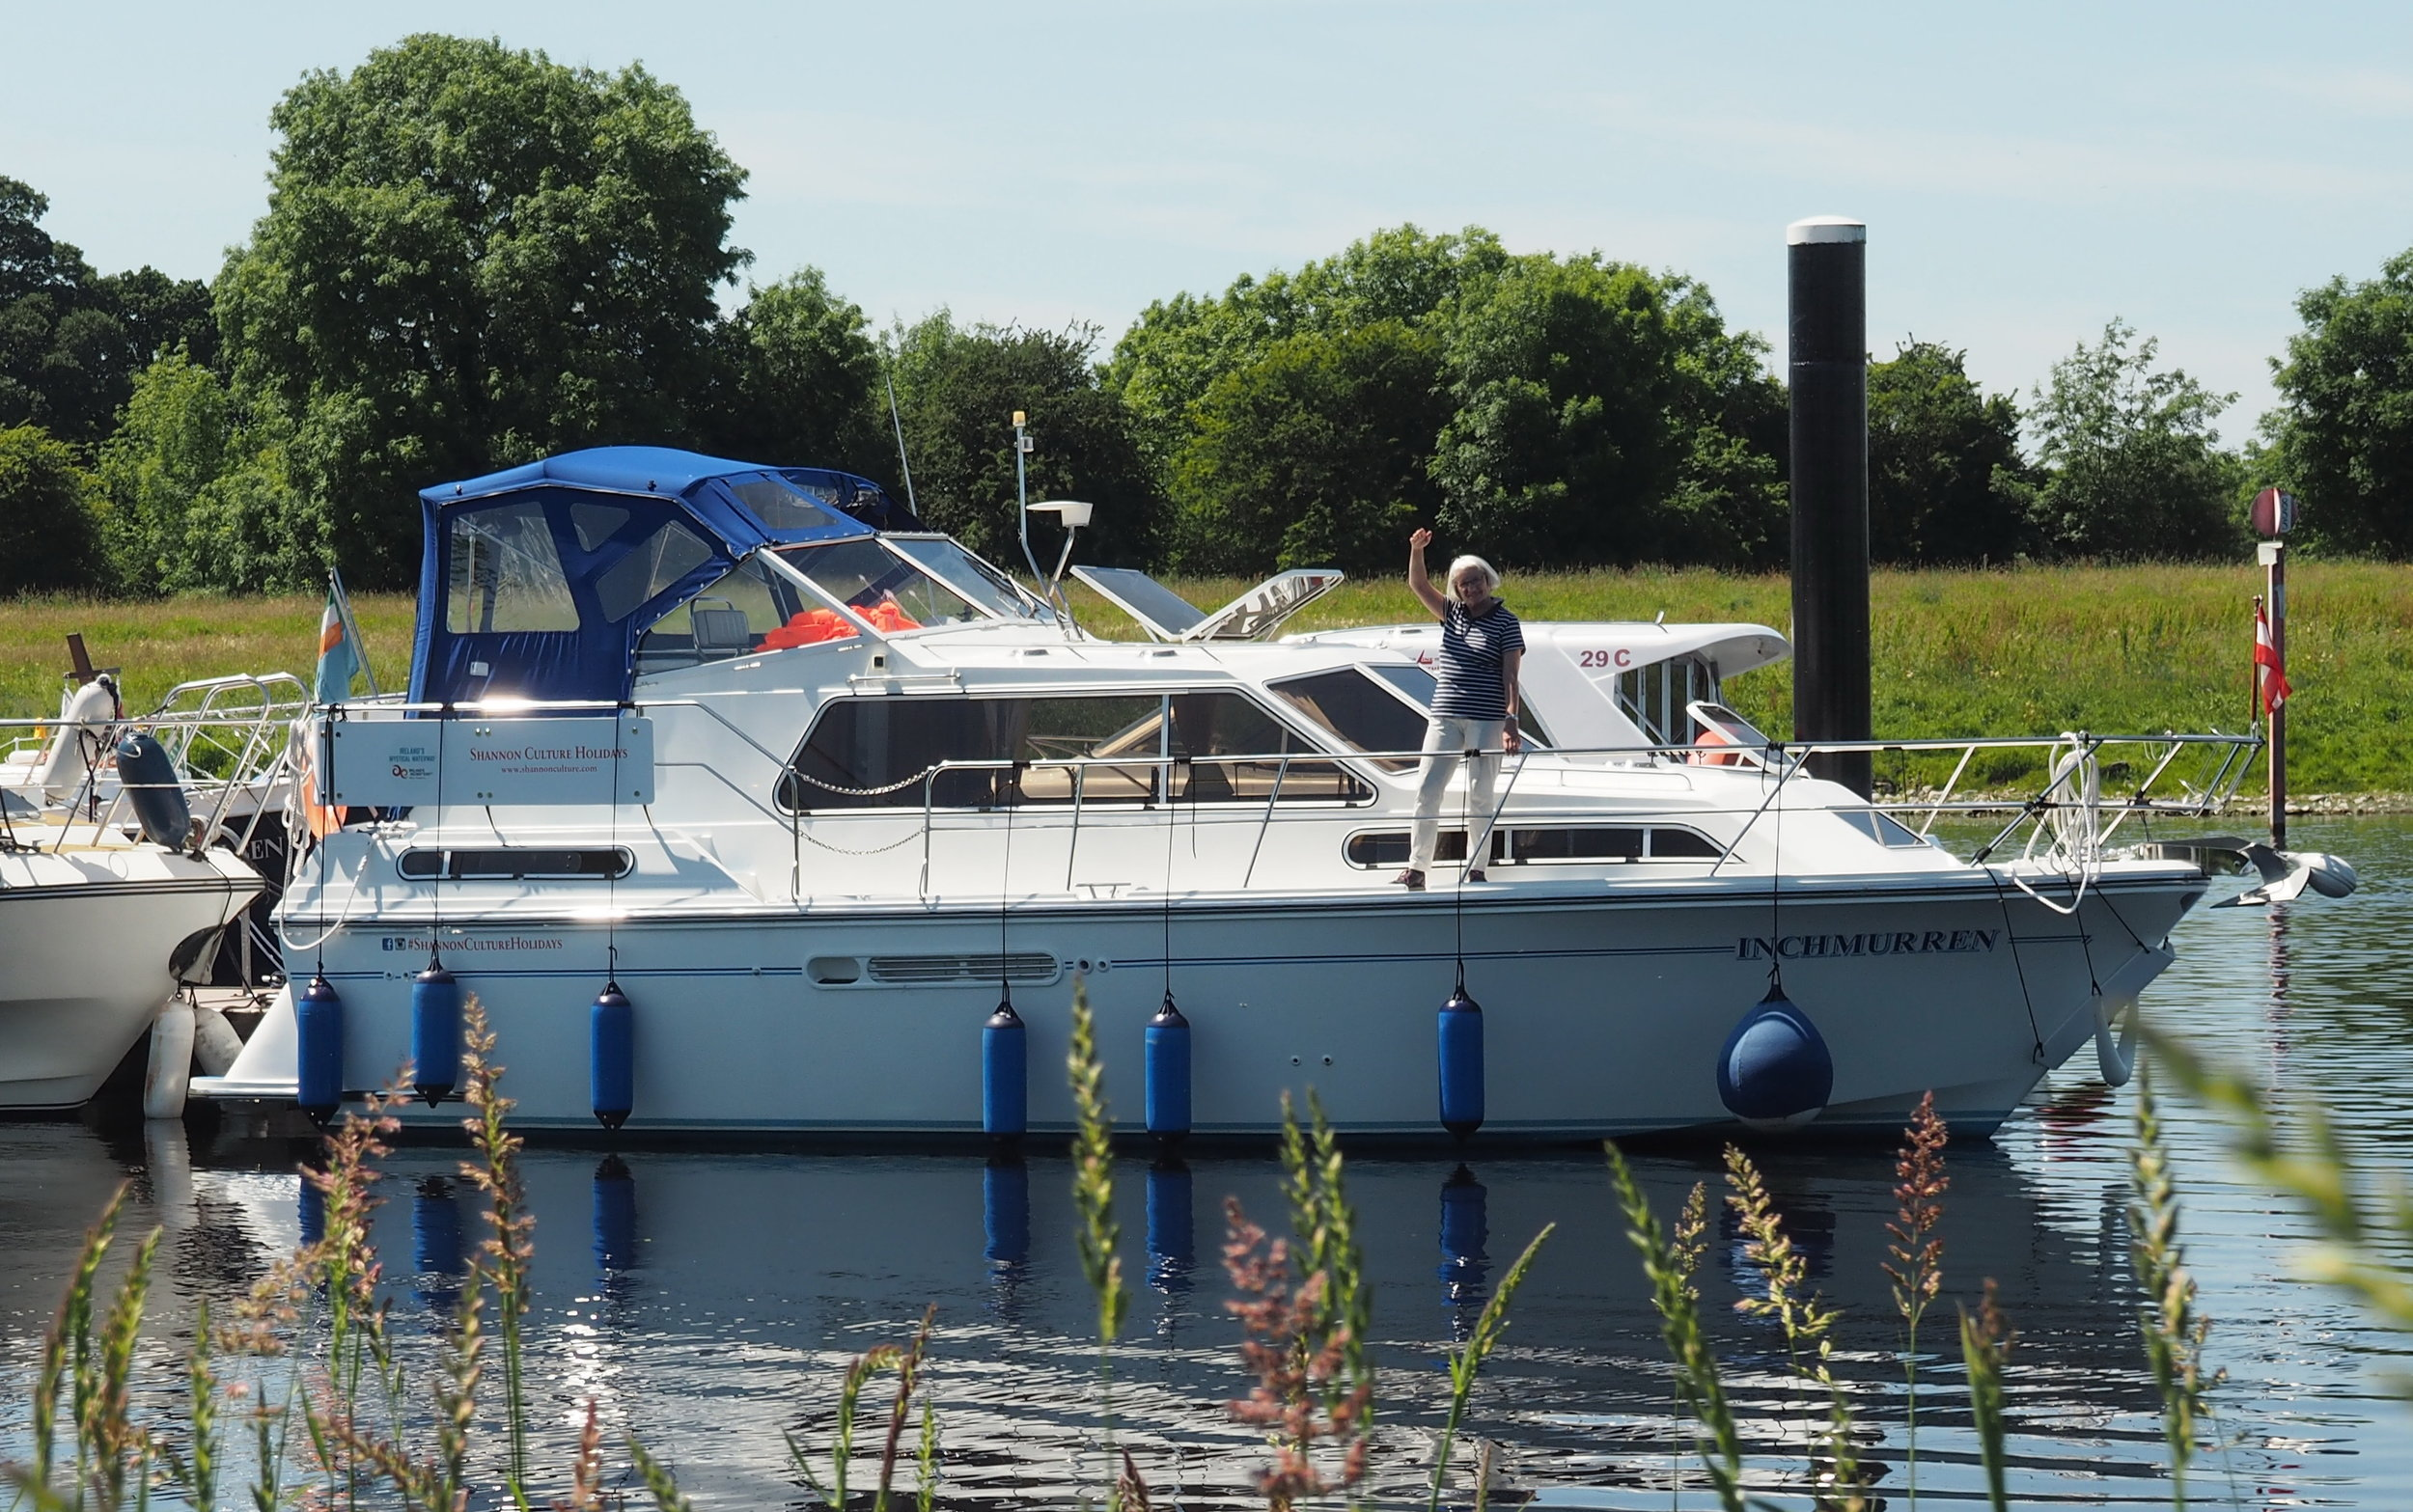 Hire boats on the River Shannon Ireland.